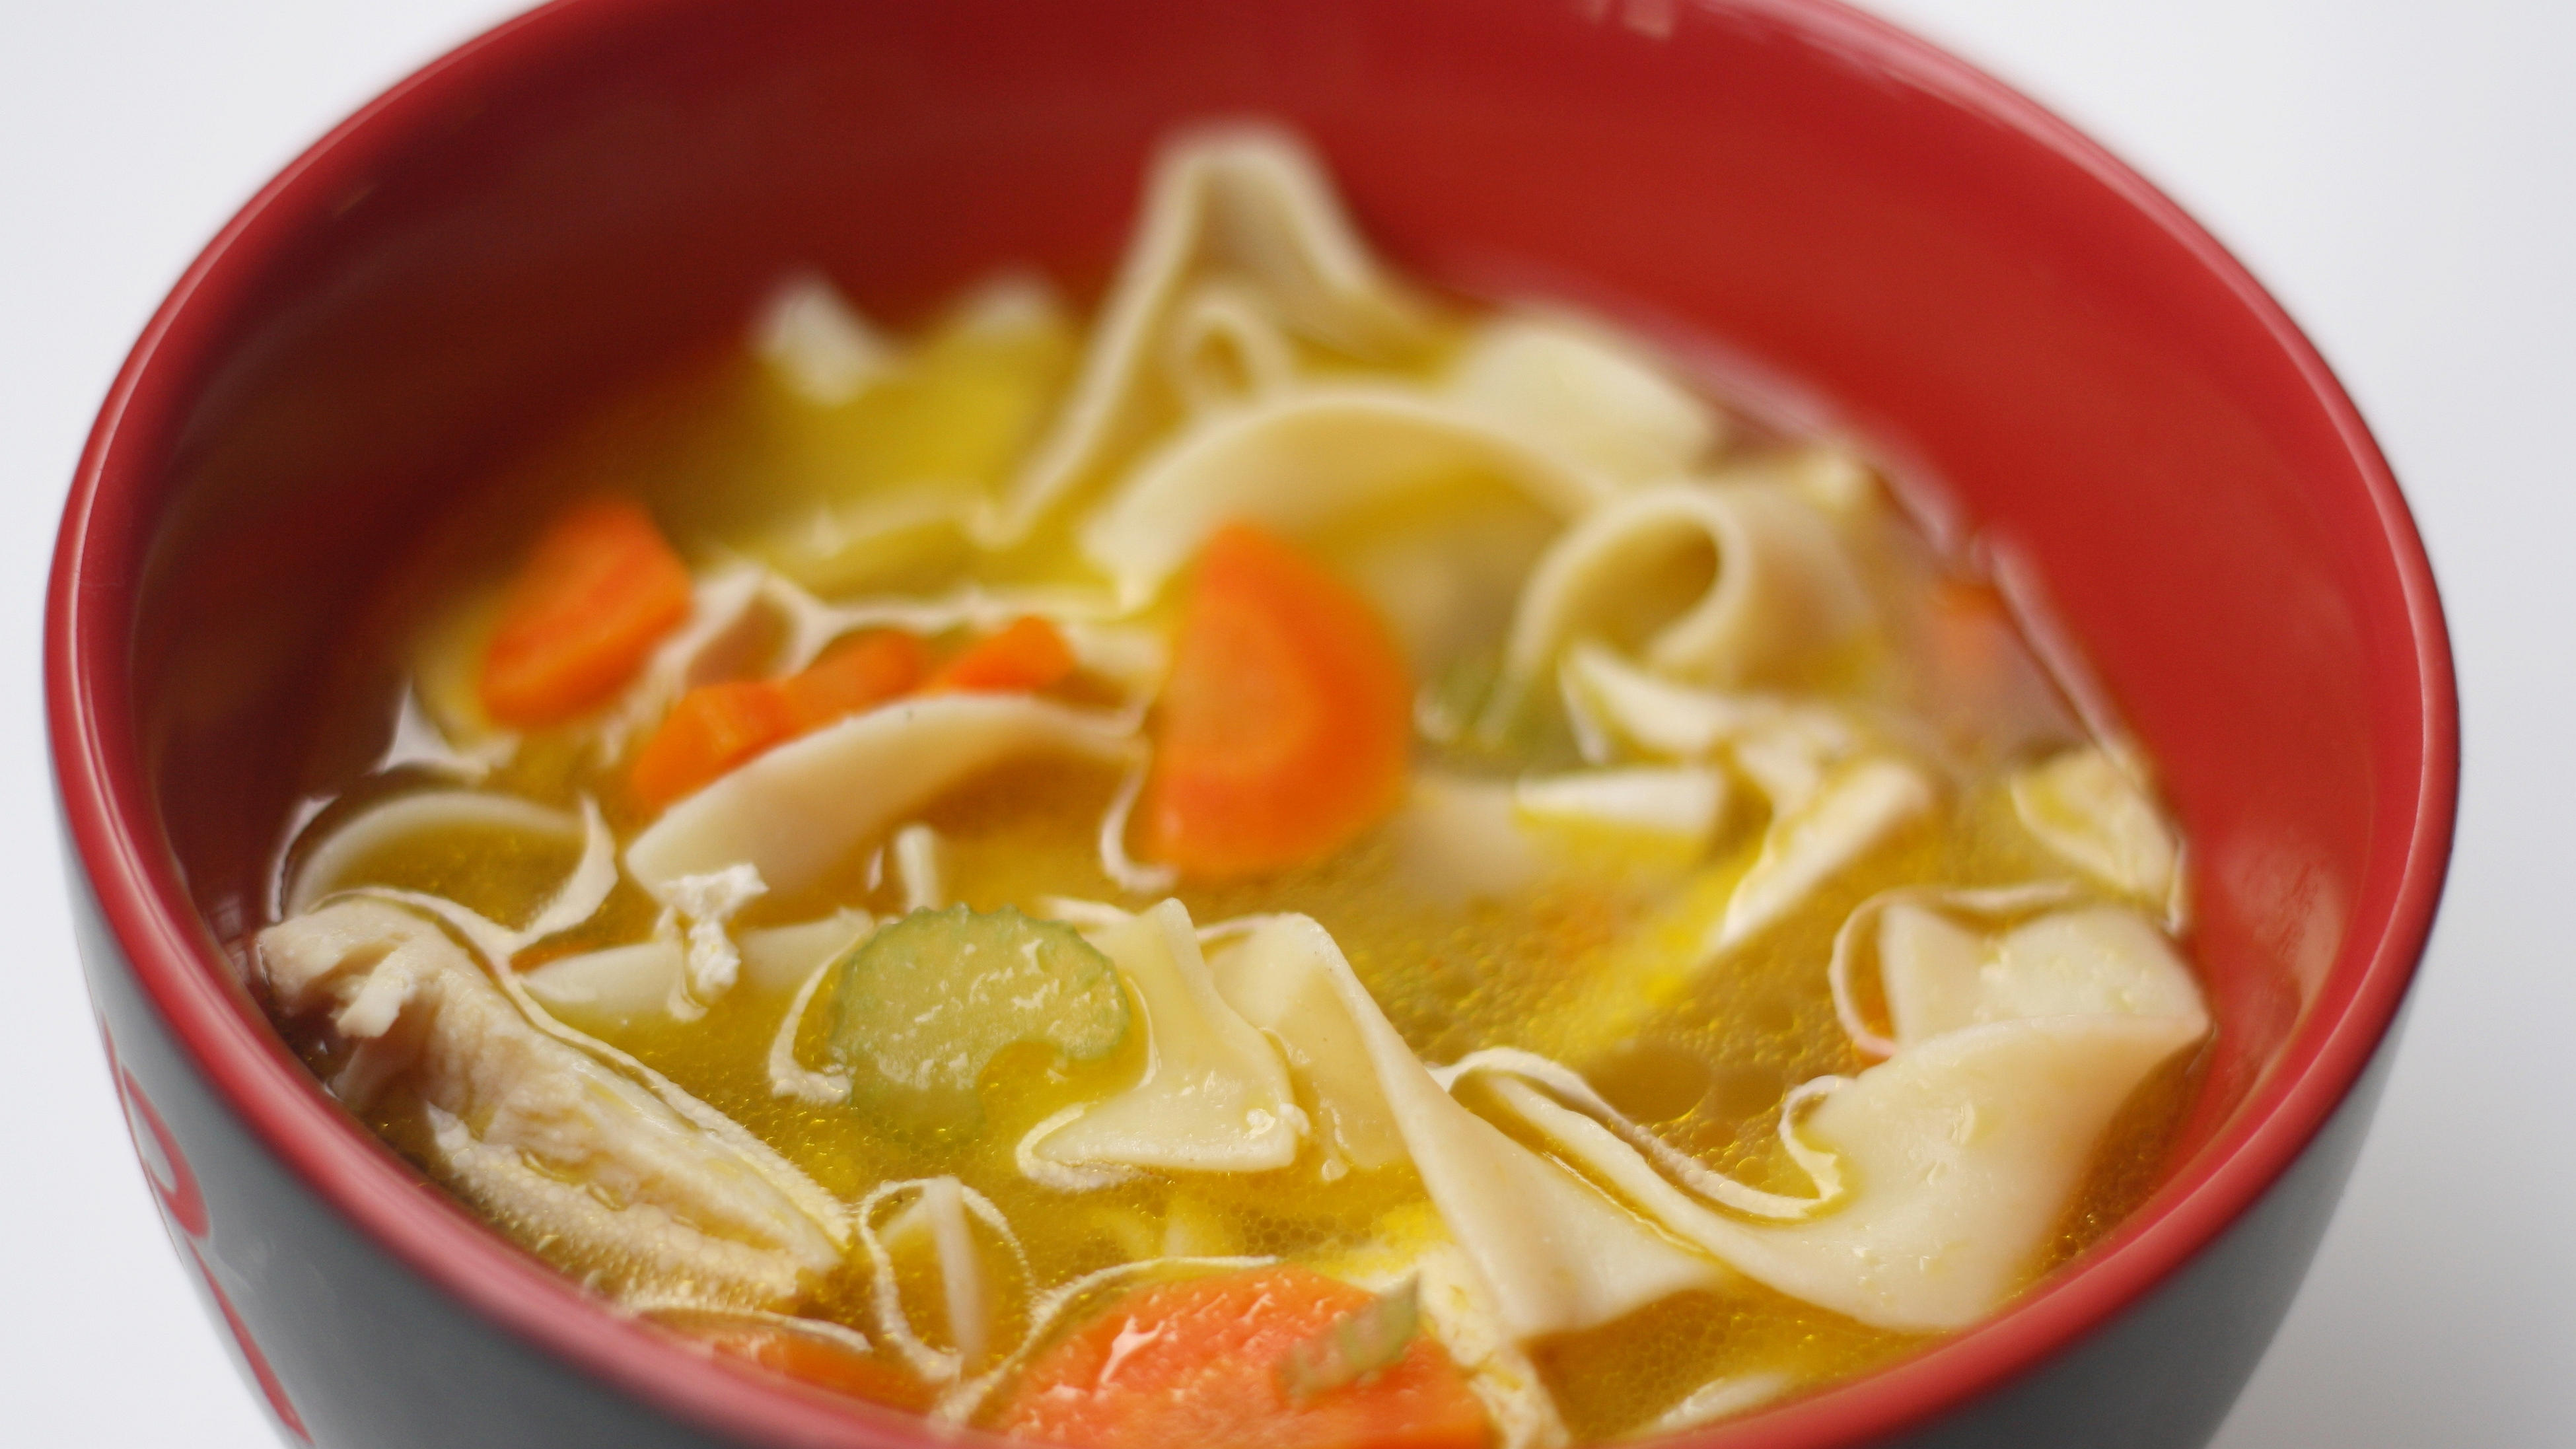 Chicken Soup 4k Ultra HD Wallpaper Background Image 3900x2194 3900x2194